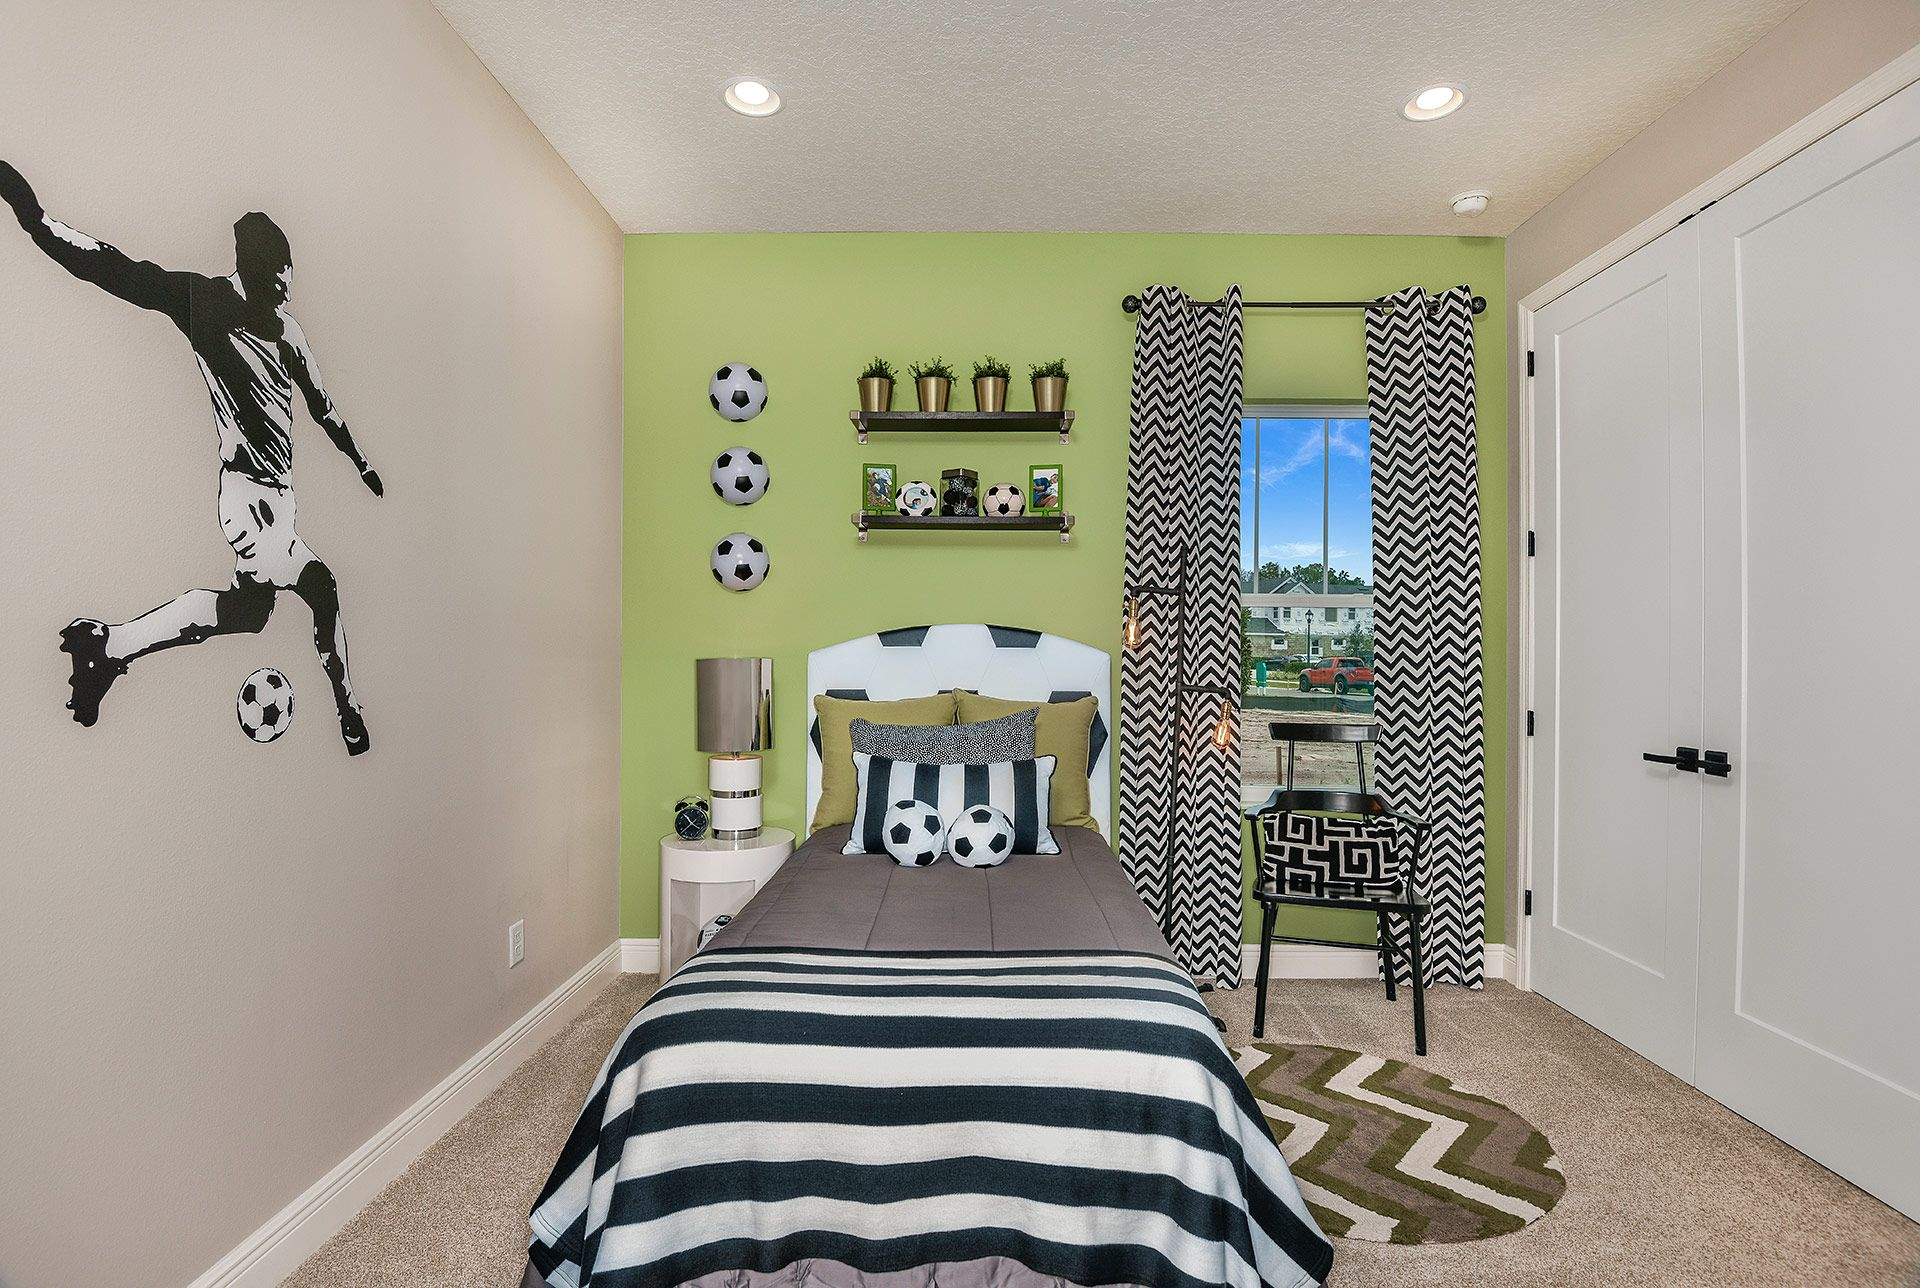 Bedroom featured in the Bayshore II By Homes by WestBay in Tampa-St. Petersburg, FL